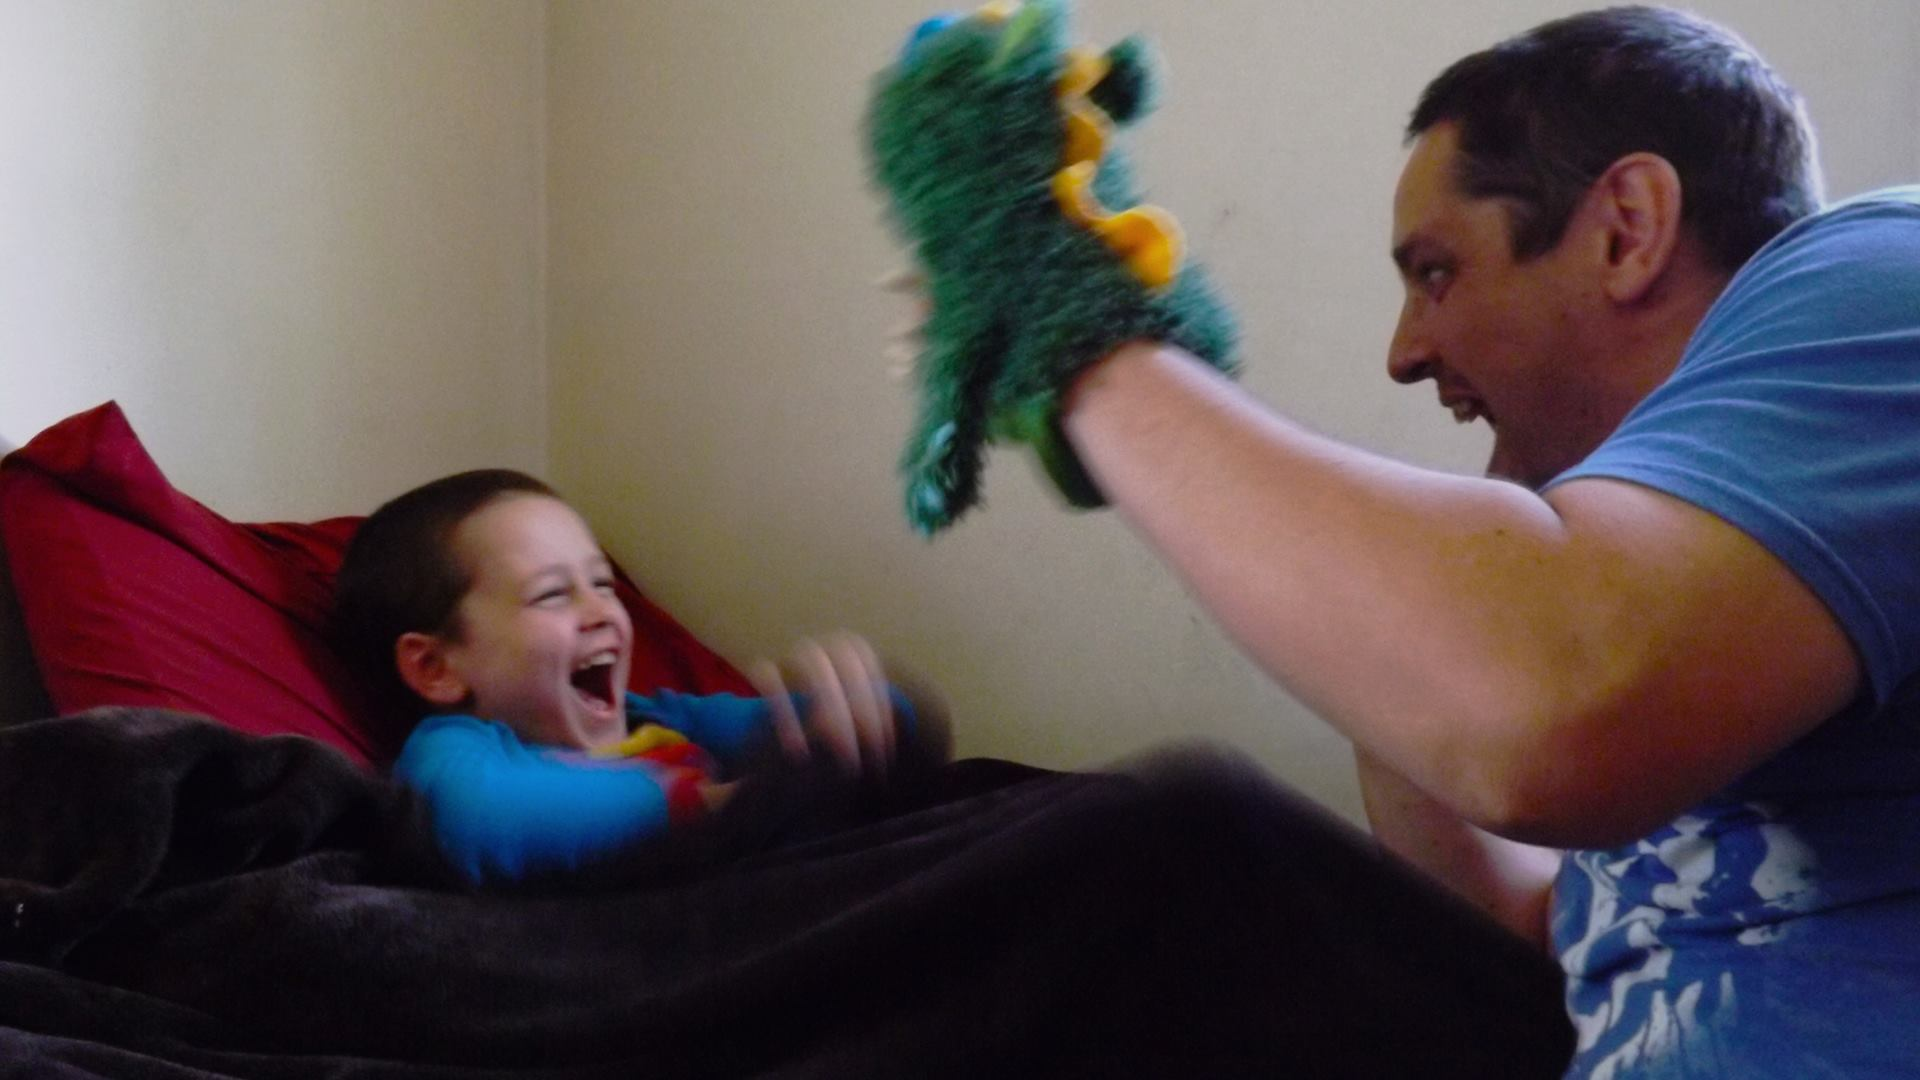 Dad Blogger Chris does puppet storytime. They create imaginative scenarios together - adventures that the puppet goes on. This is a great way to use pretend play to spark imagination!